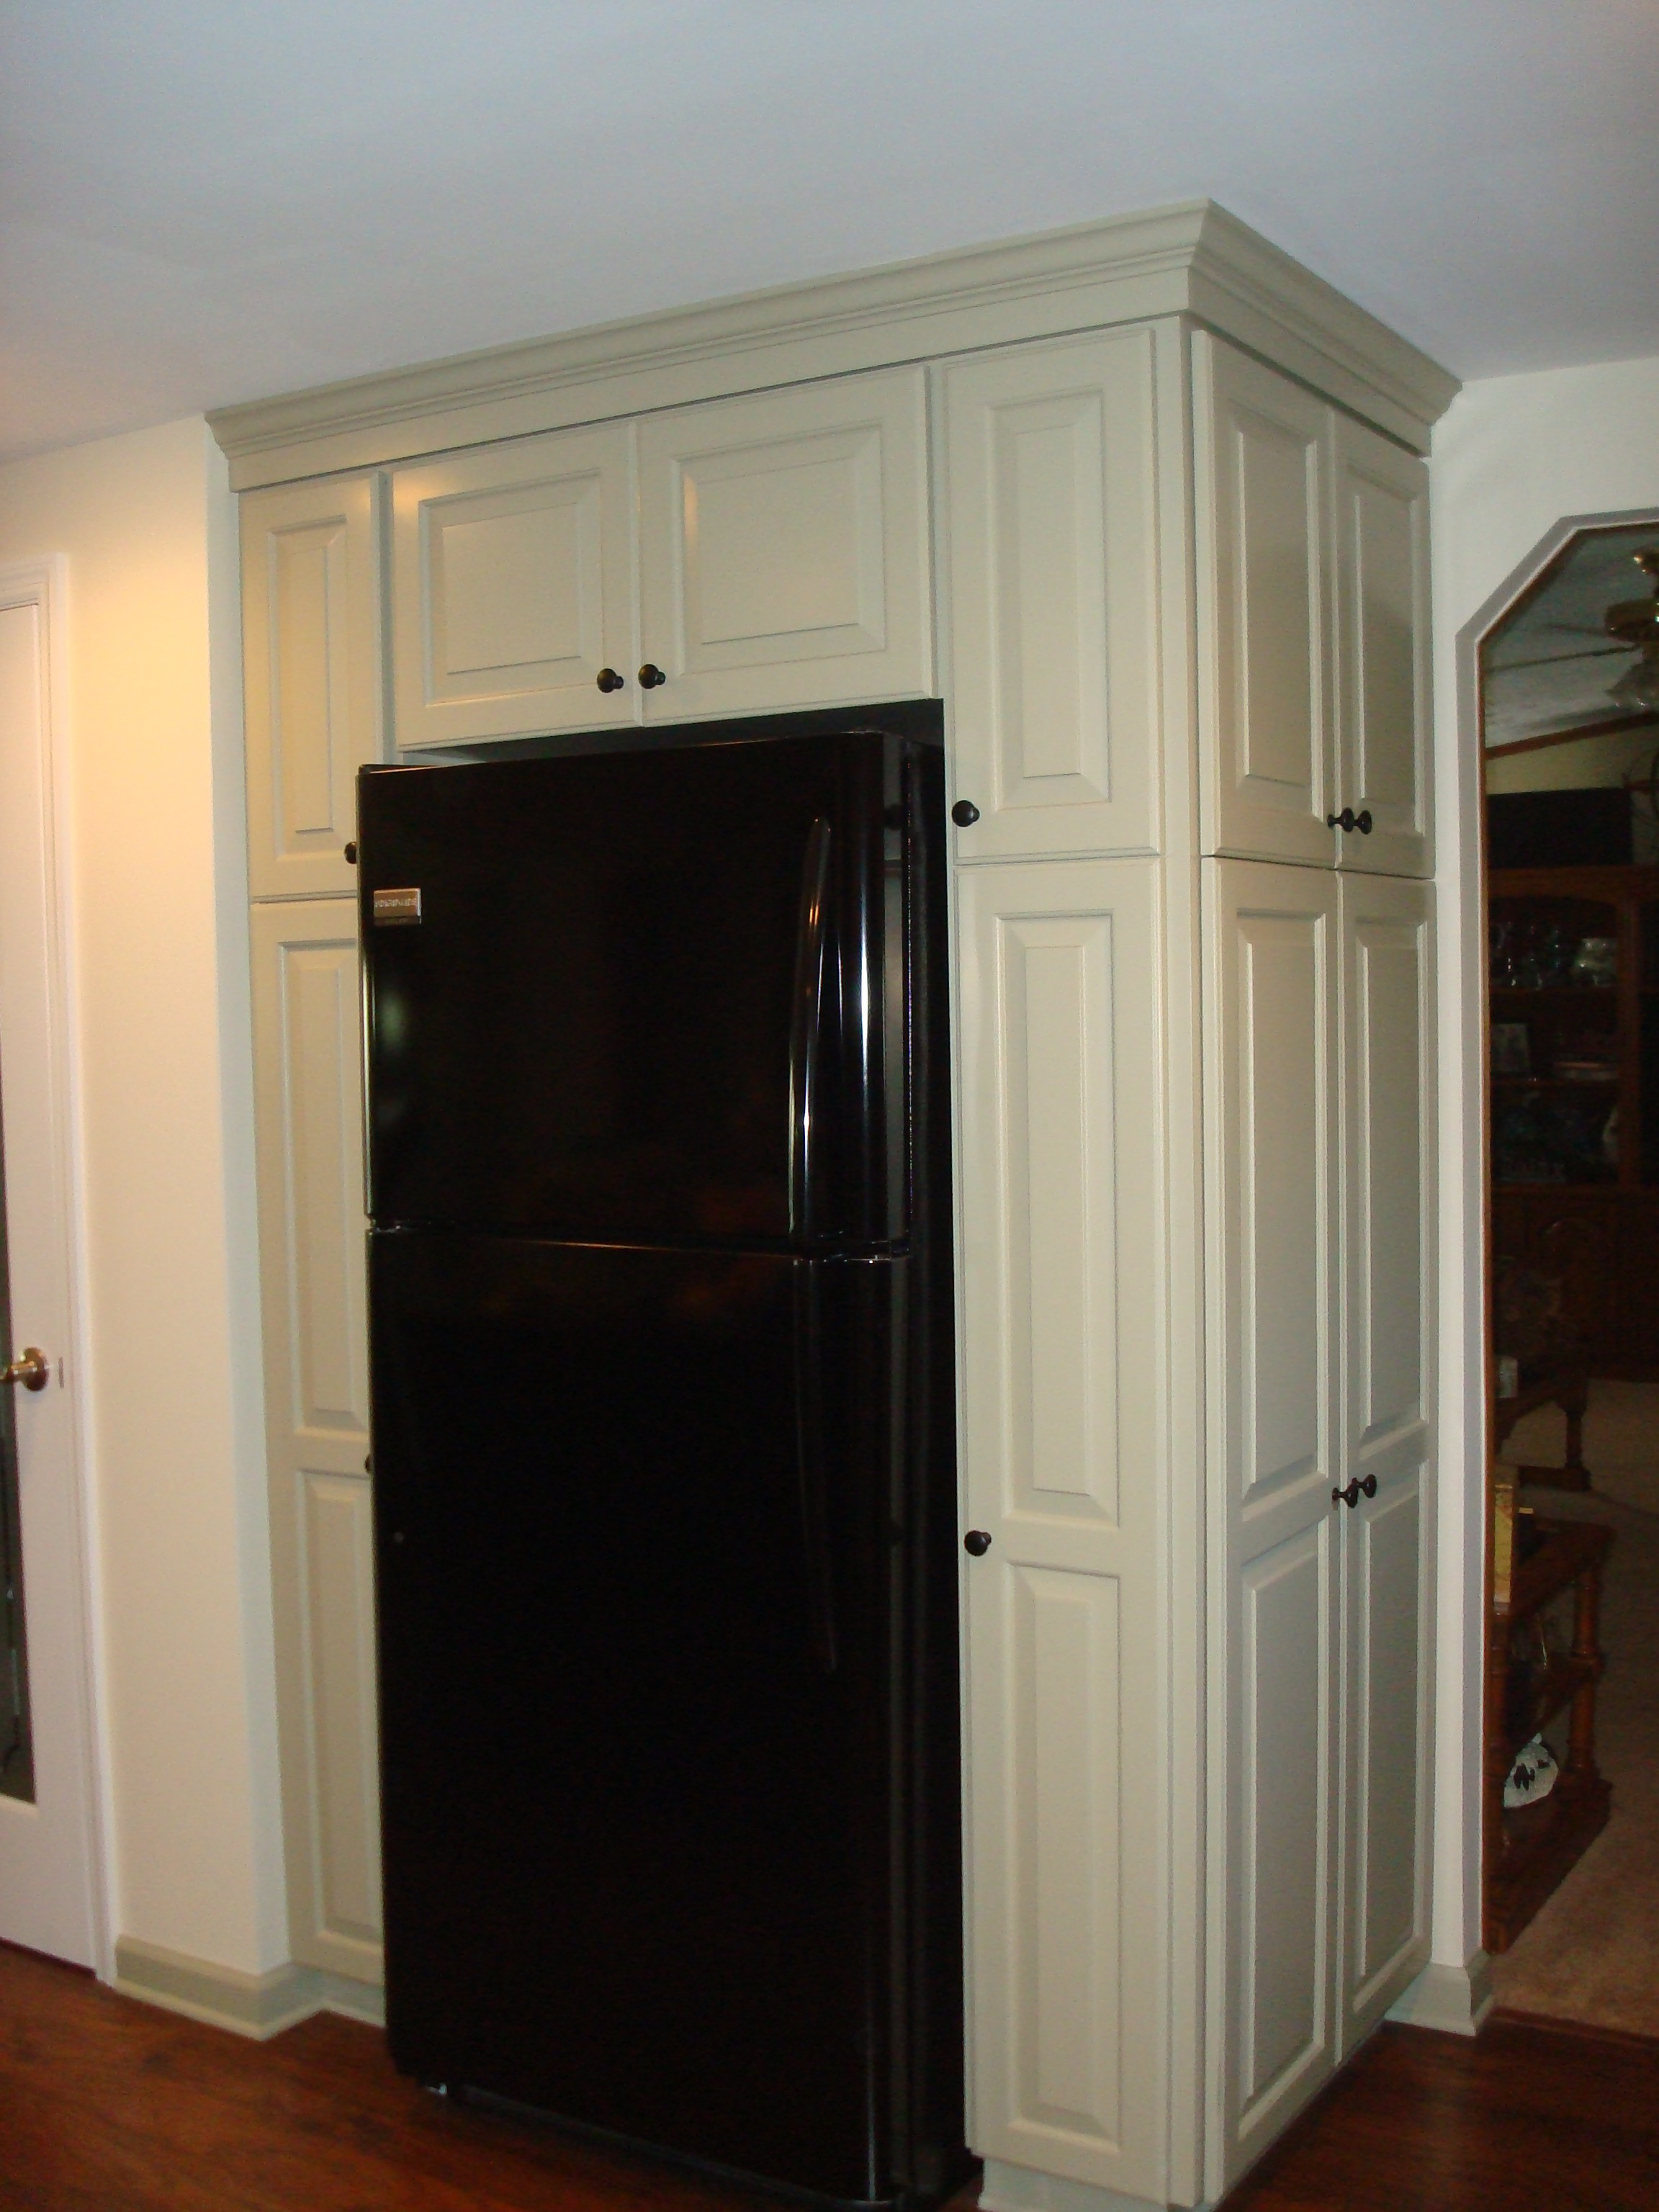 Kitchen Cabinets Around Refrigerator Mrs Martins Custom Kitchen Cabinetscapitol Cabinets